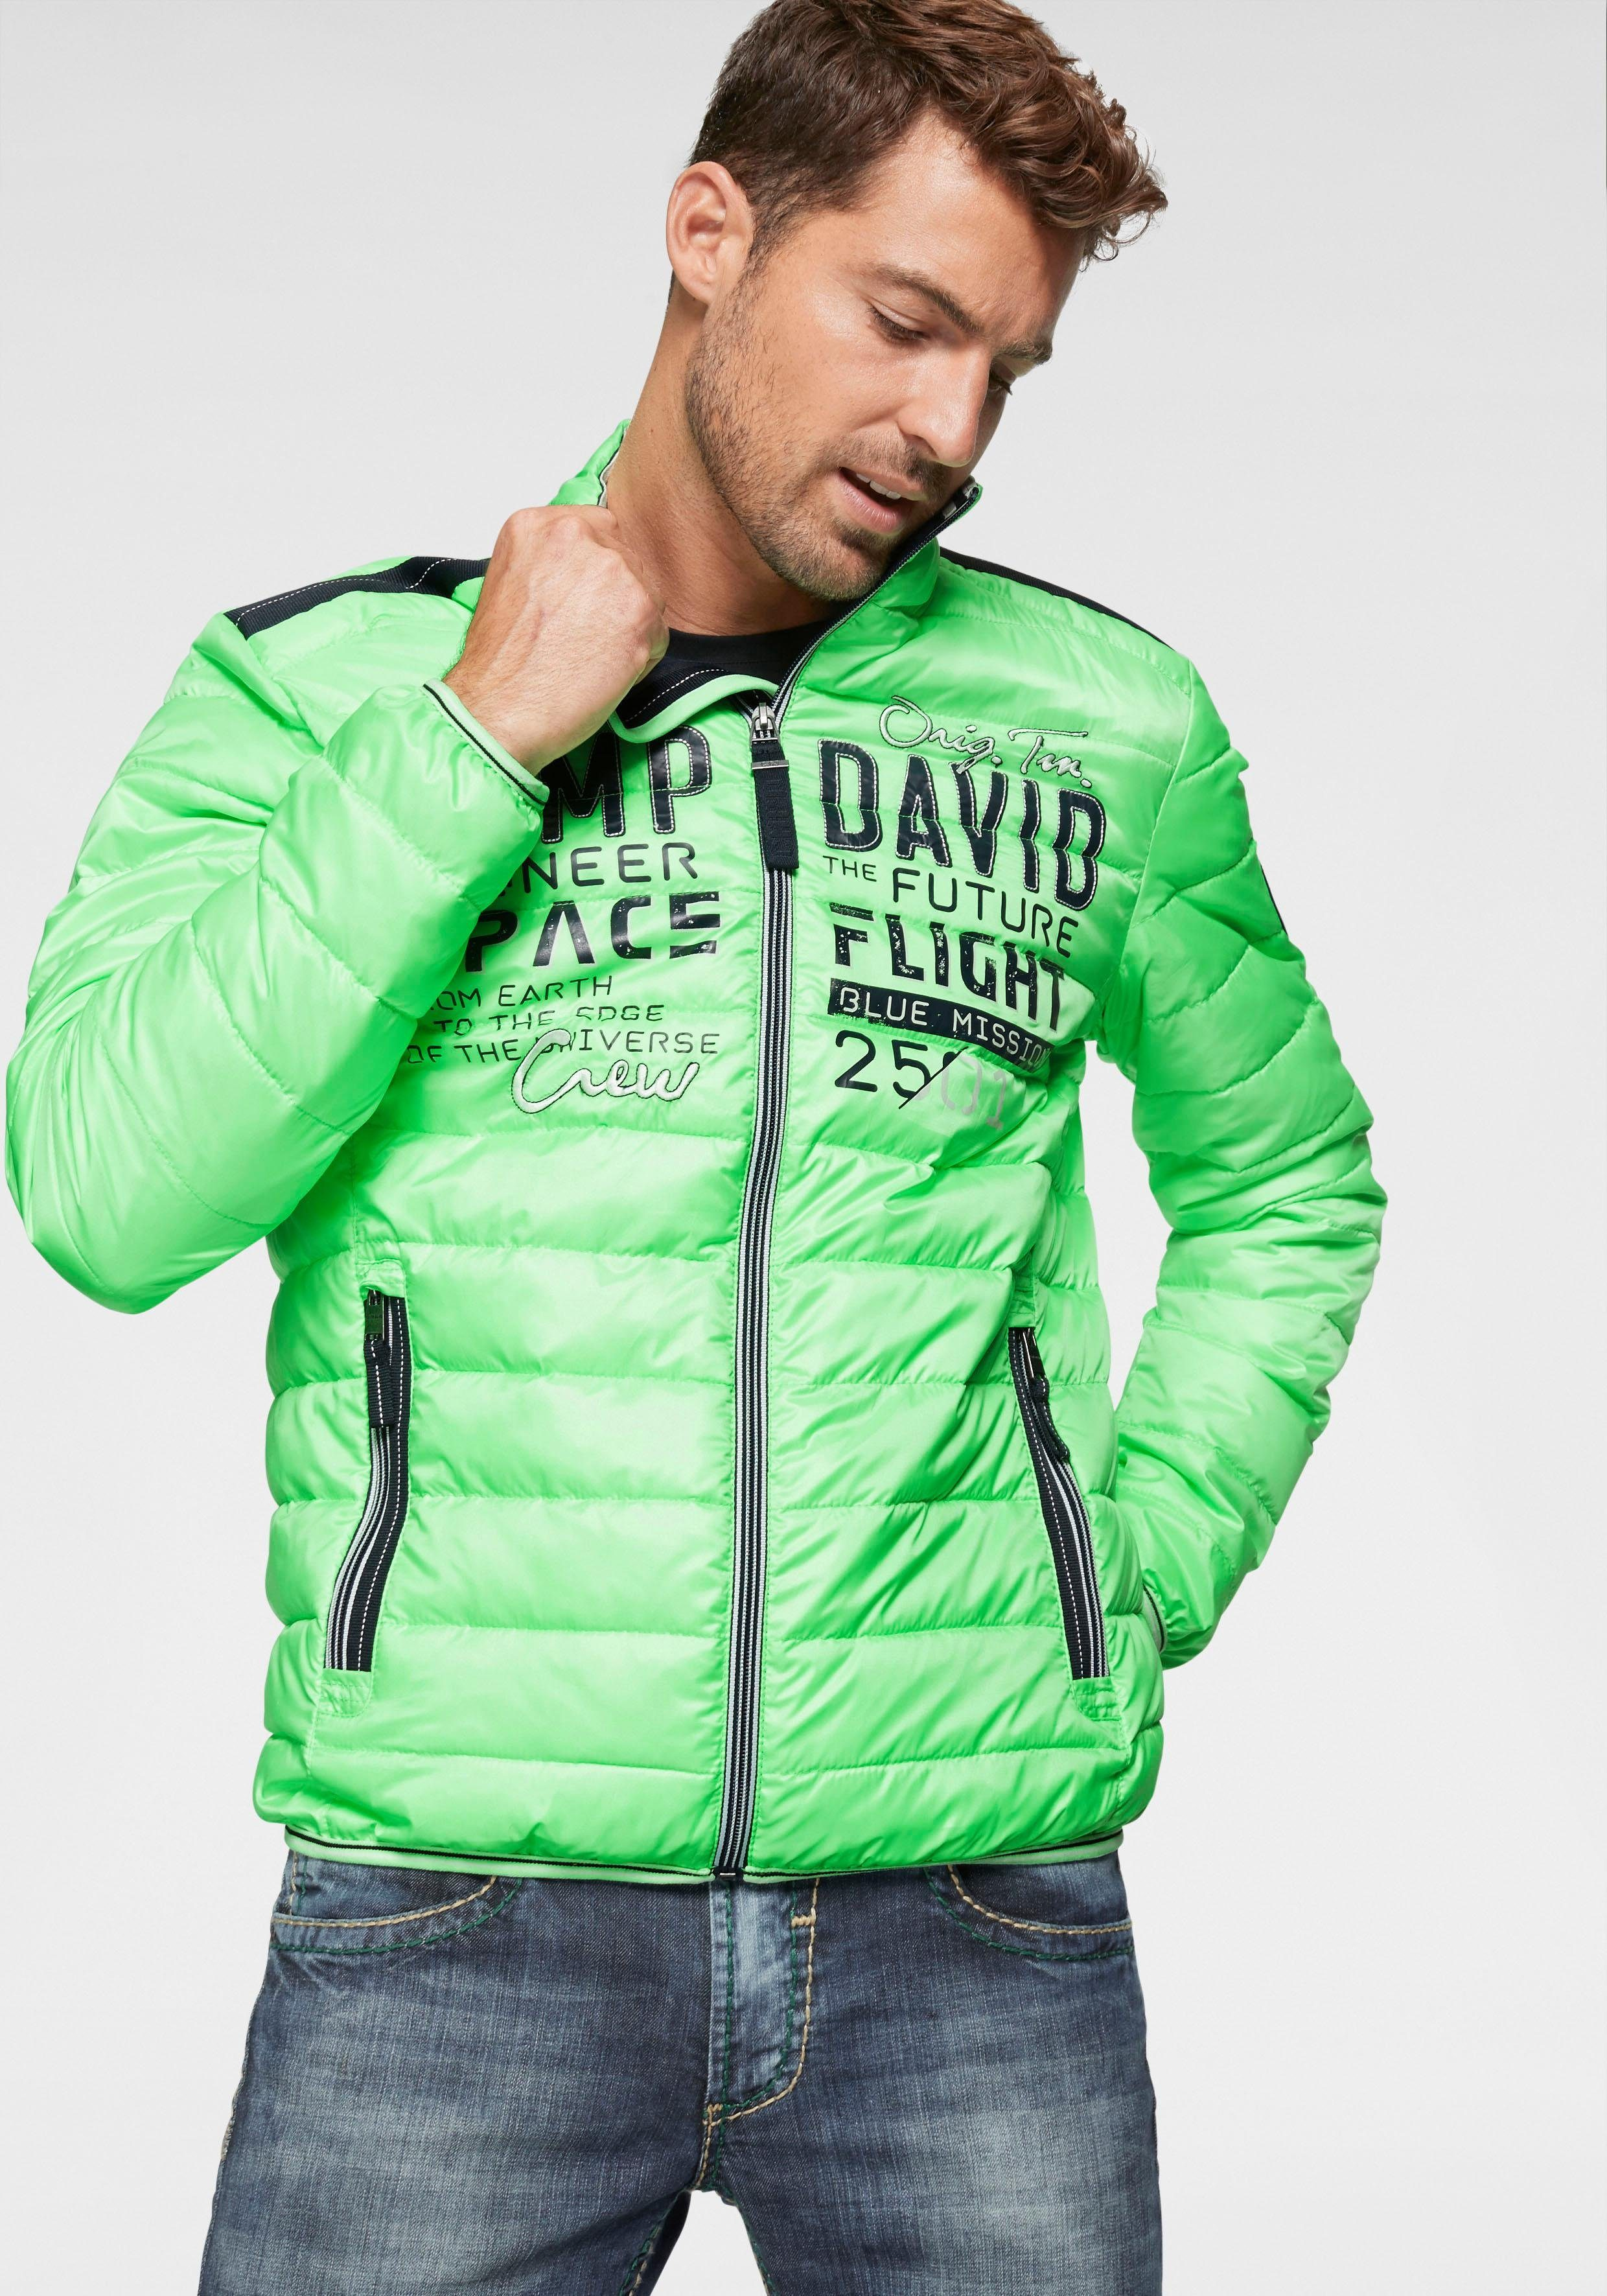 Camp David Steppjacke mit Logo Print Outdoorjacken grün